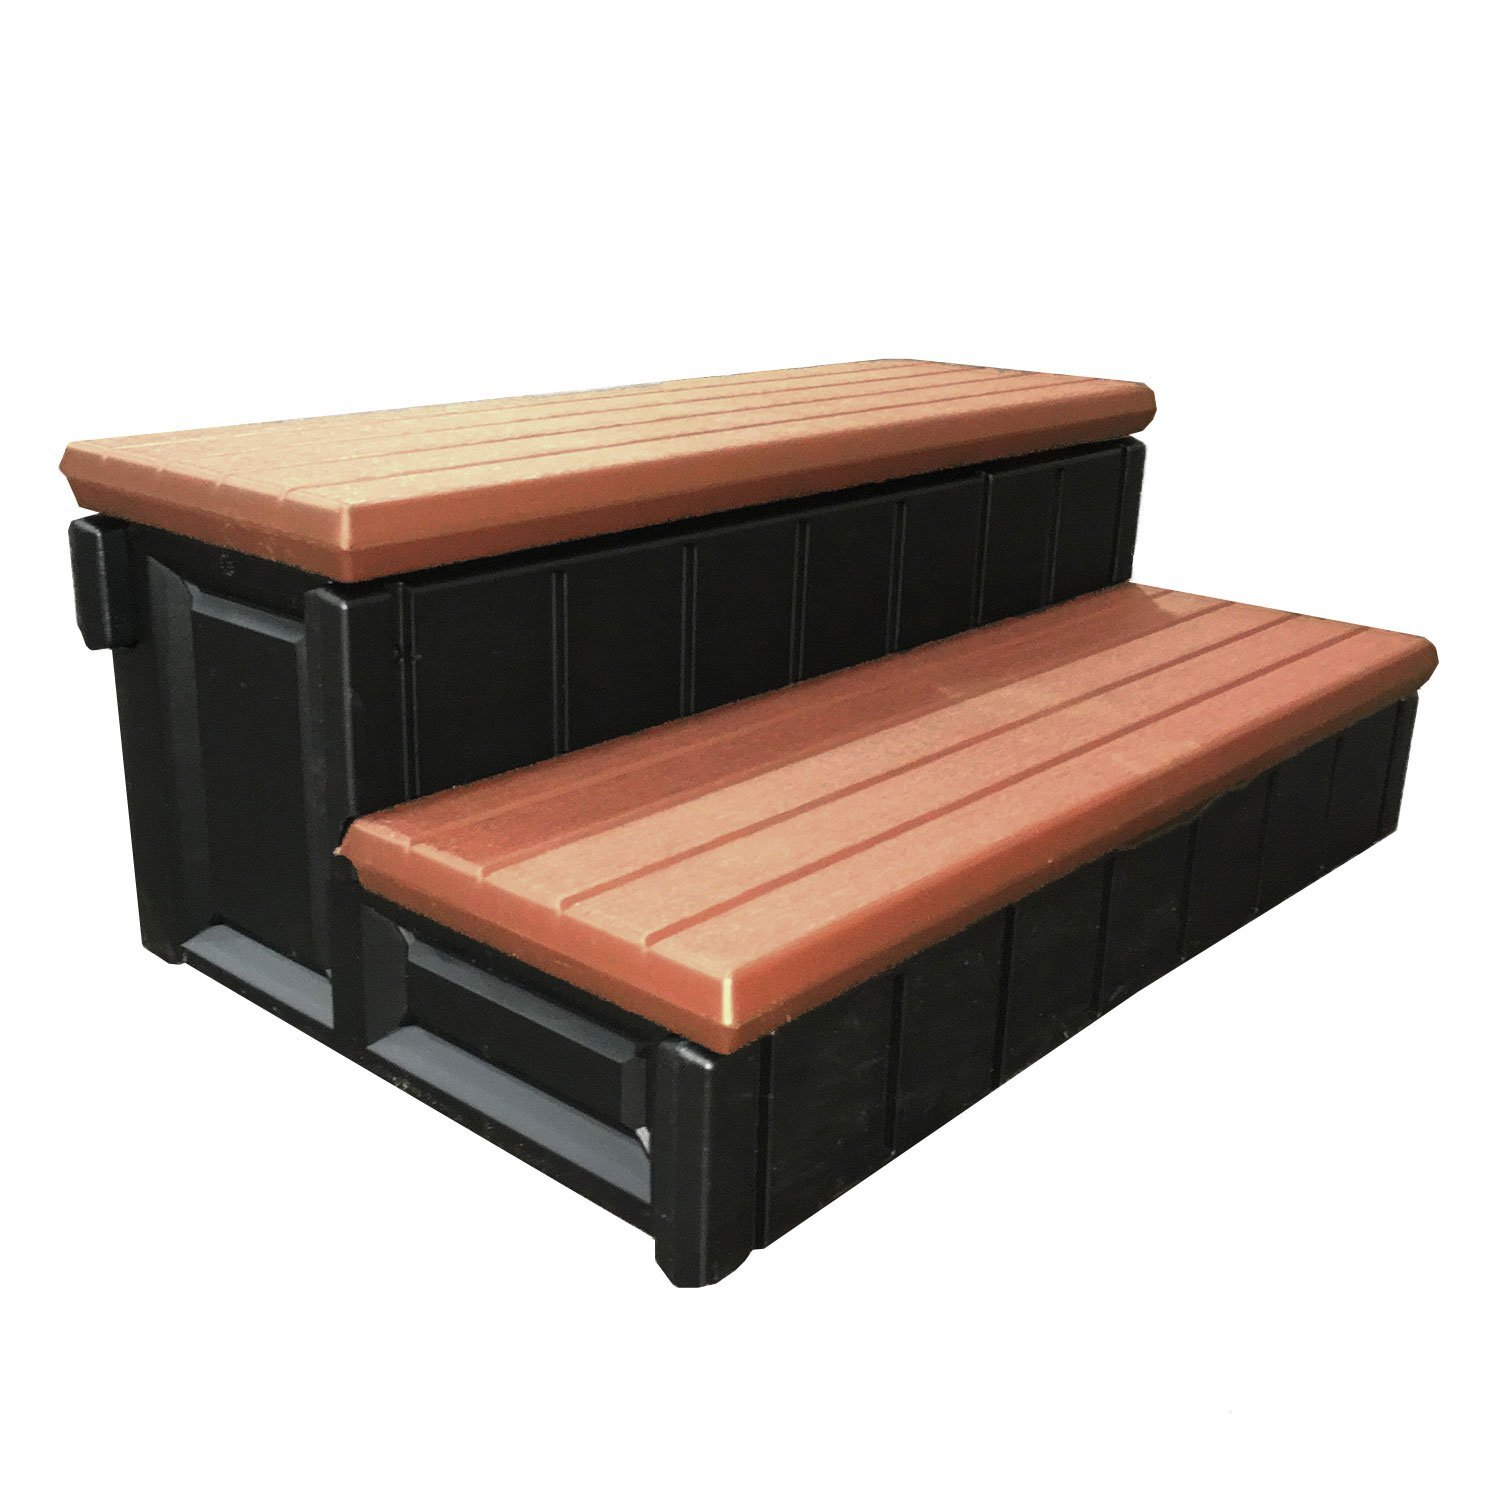 Confer Plastics Spa Stairs Redwood by Leisure Accents